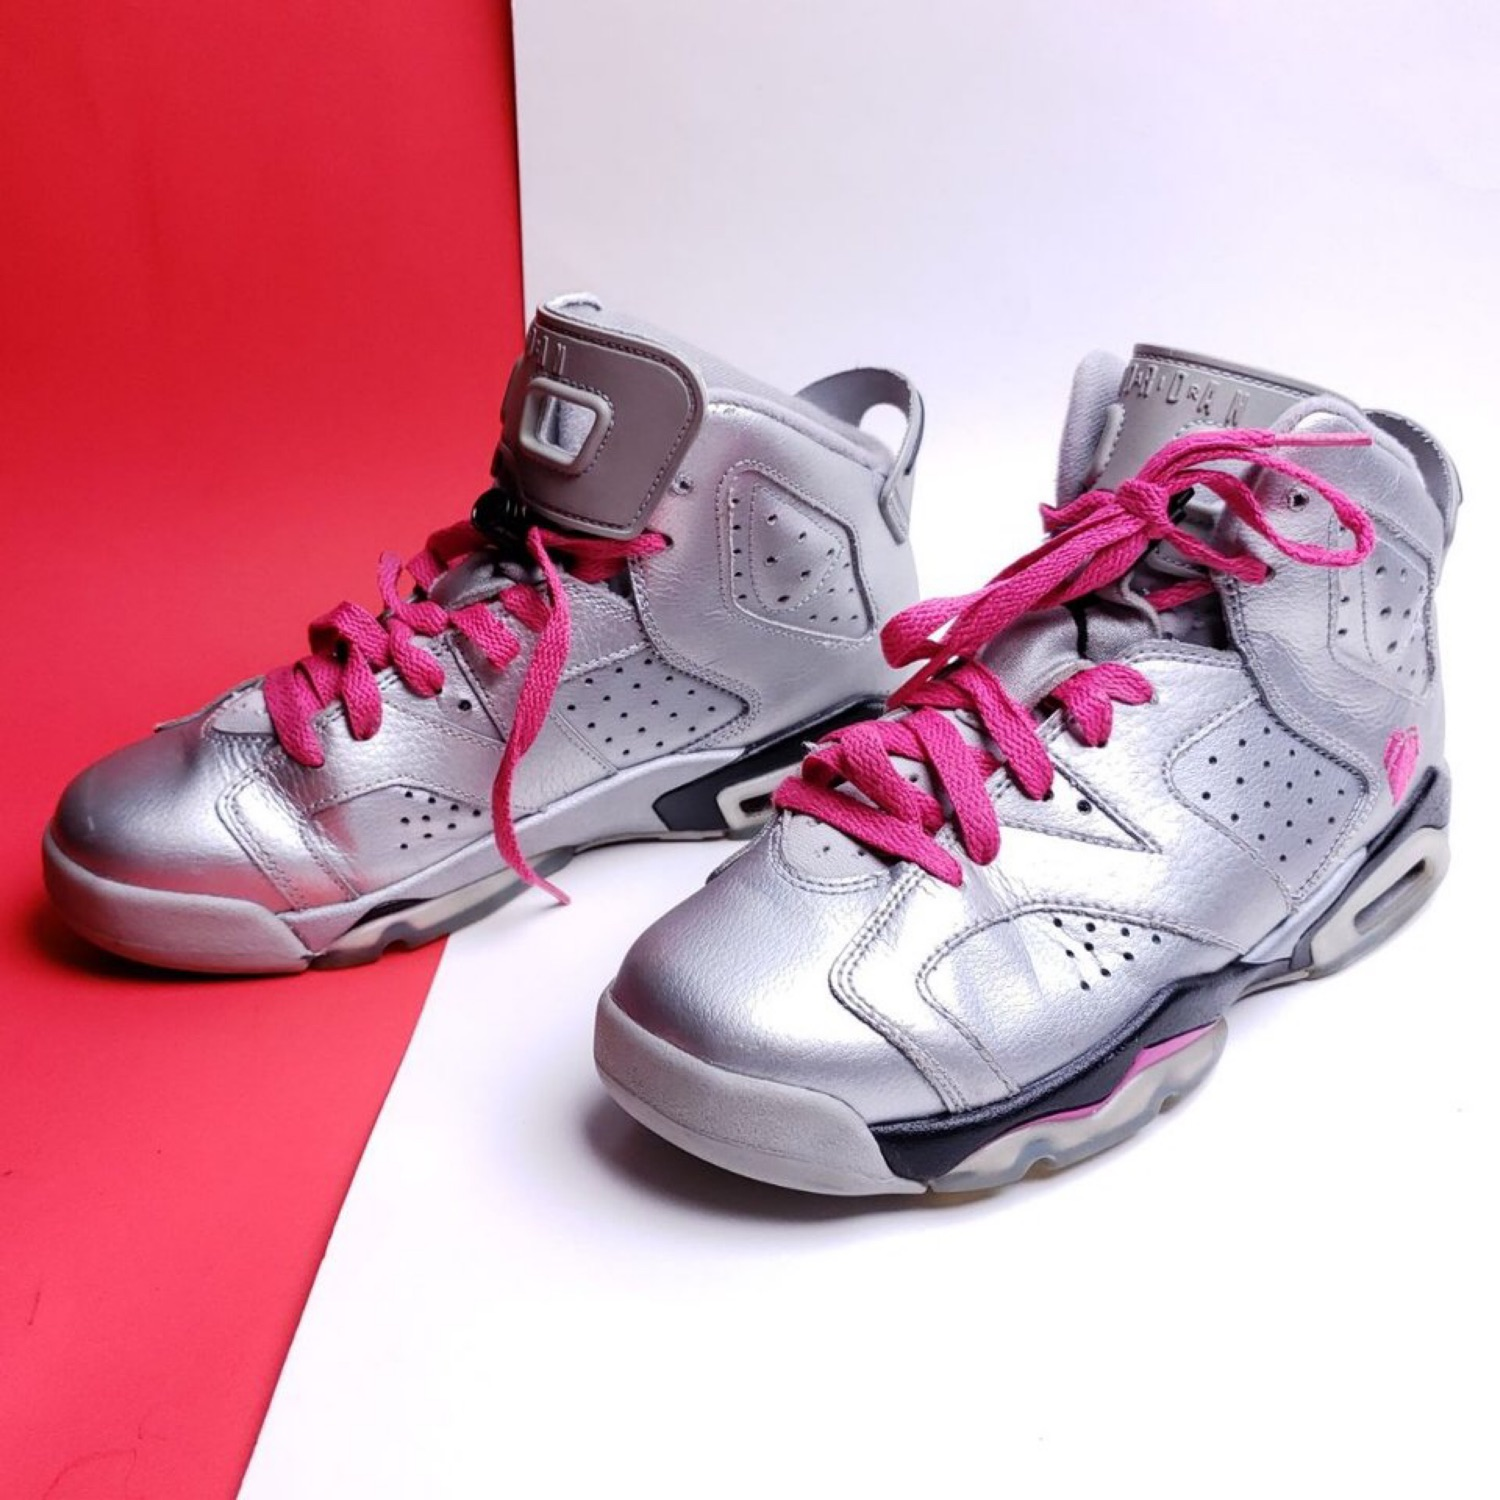 Air Jordan 6 Retro Gg 'Valentines Day' (2013)